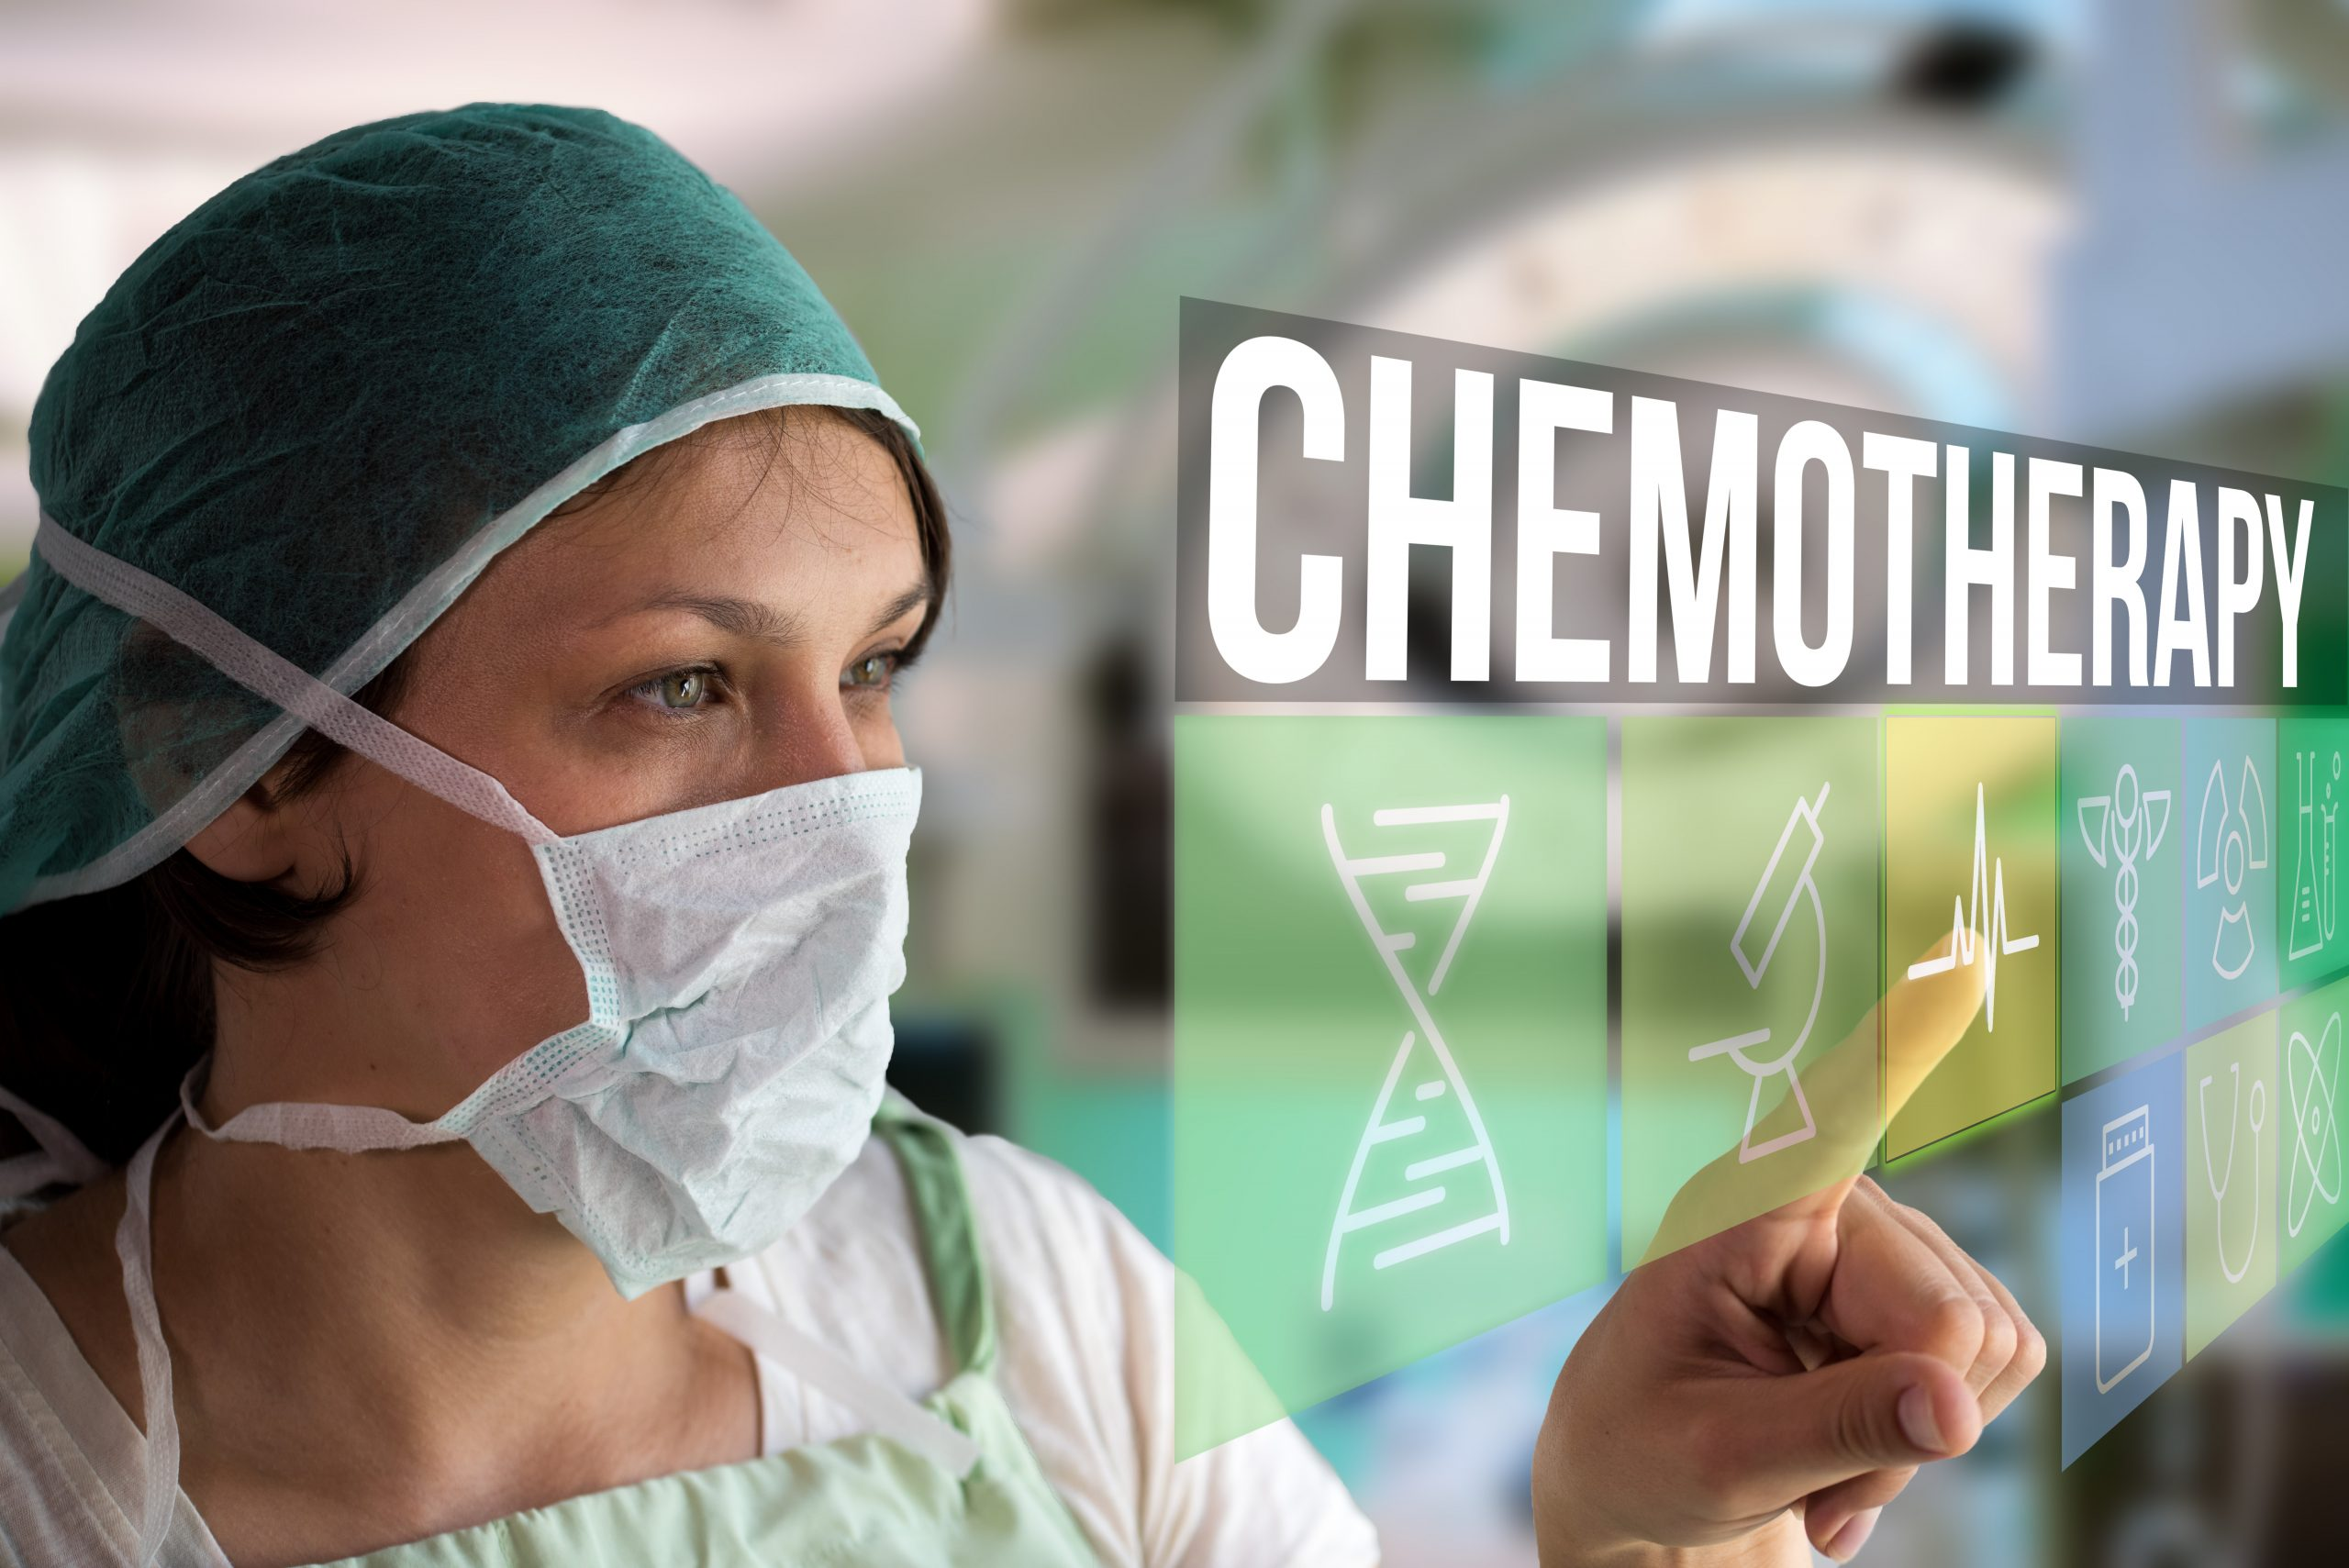 Chemotherapy myths: Is there any truth behind these common beliefs?